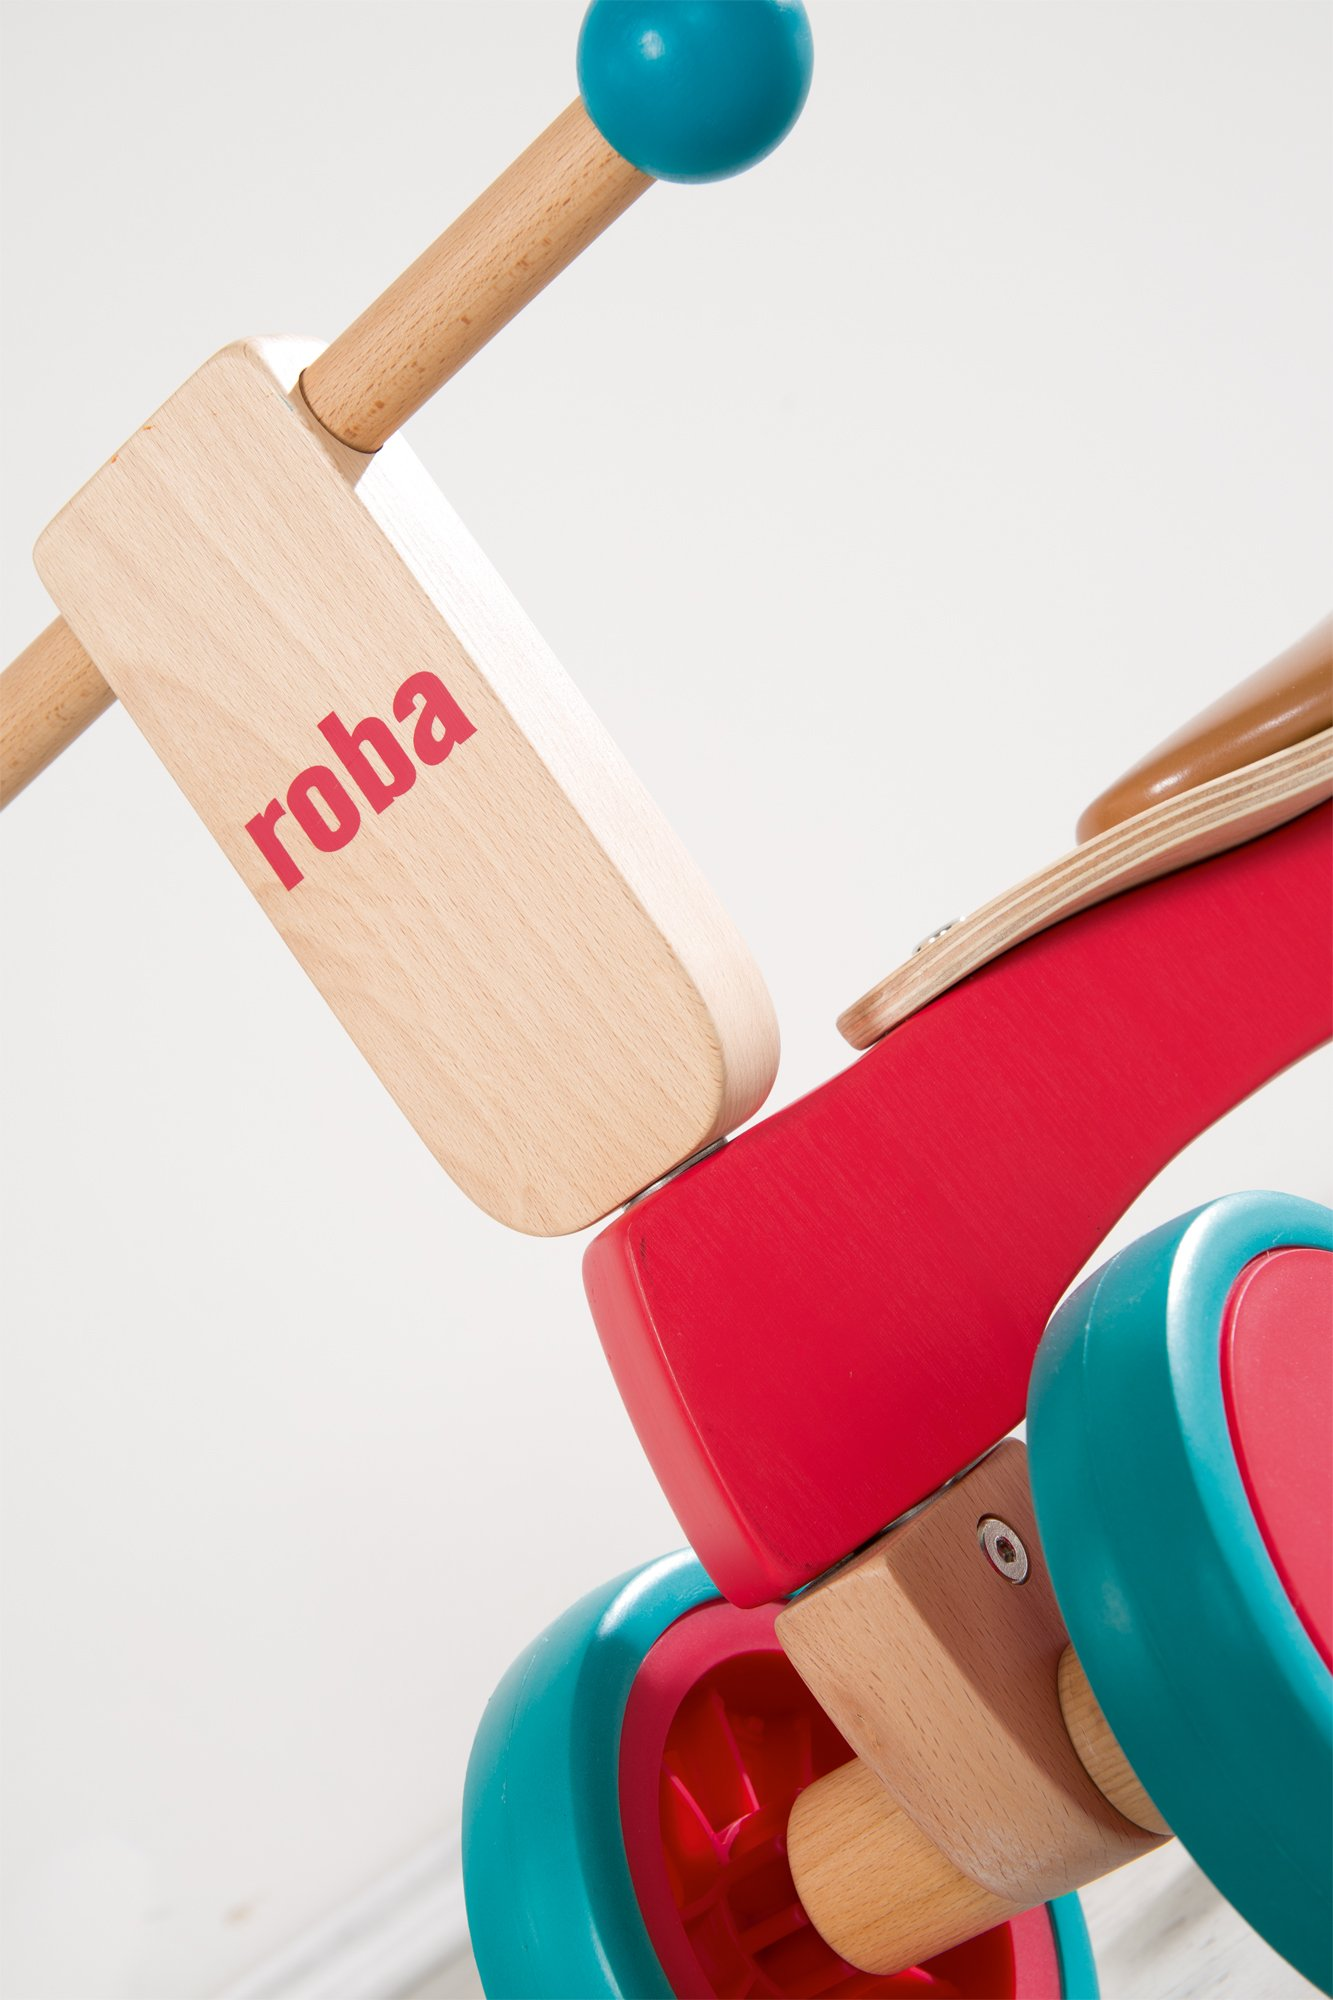 roba Wooden Vehicle for Toddlers from 1Year Old  This Roba wooden vehicle is the ideal learner's bicycle from toddlers of 12months and over to learn about balance and body coordination while having fun. The vehicle has a soft padded seat that is 22cm in height, and is suitable for children who are 80cm tall and over. The large coloured rubber tyres made from soft material (won't harm the floor) ensures a secure grip and is easy to move forward – for indoor and outdoor use. 4